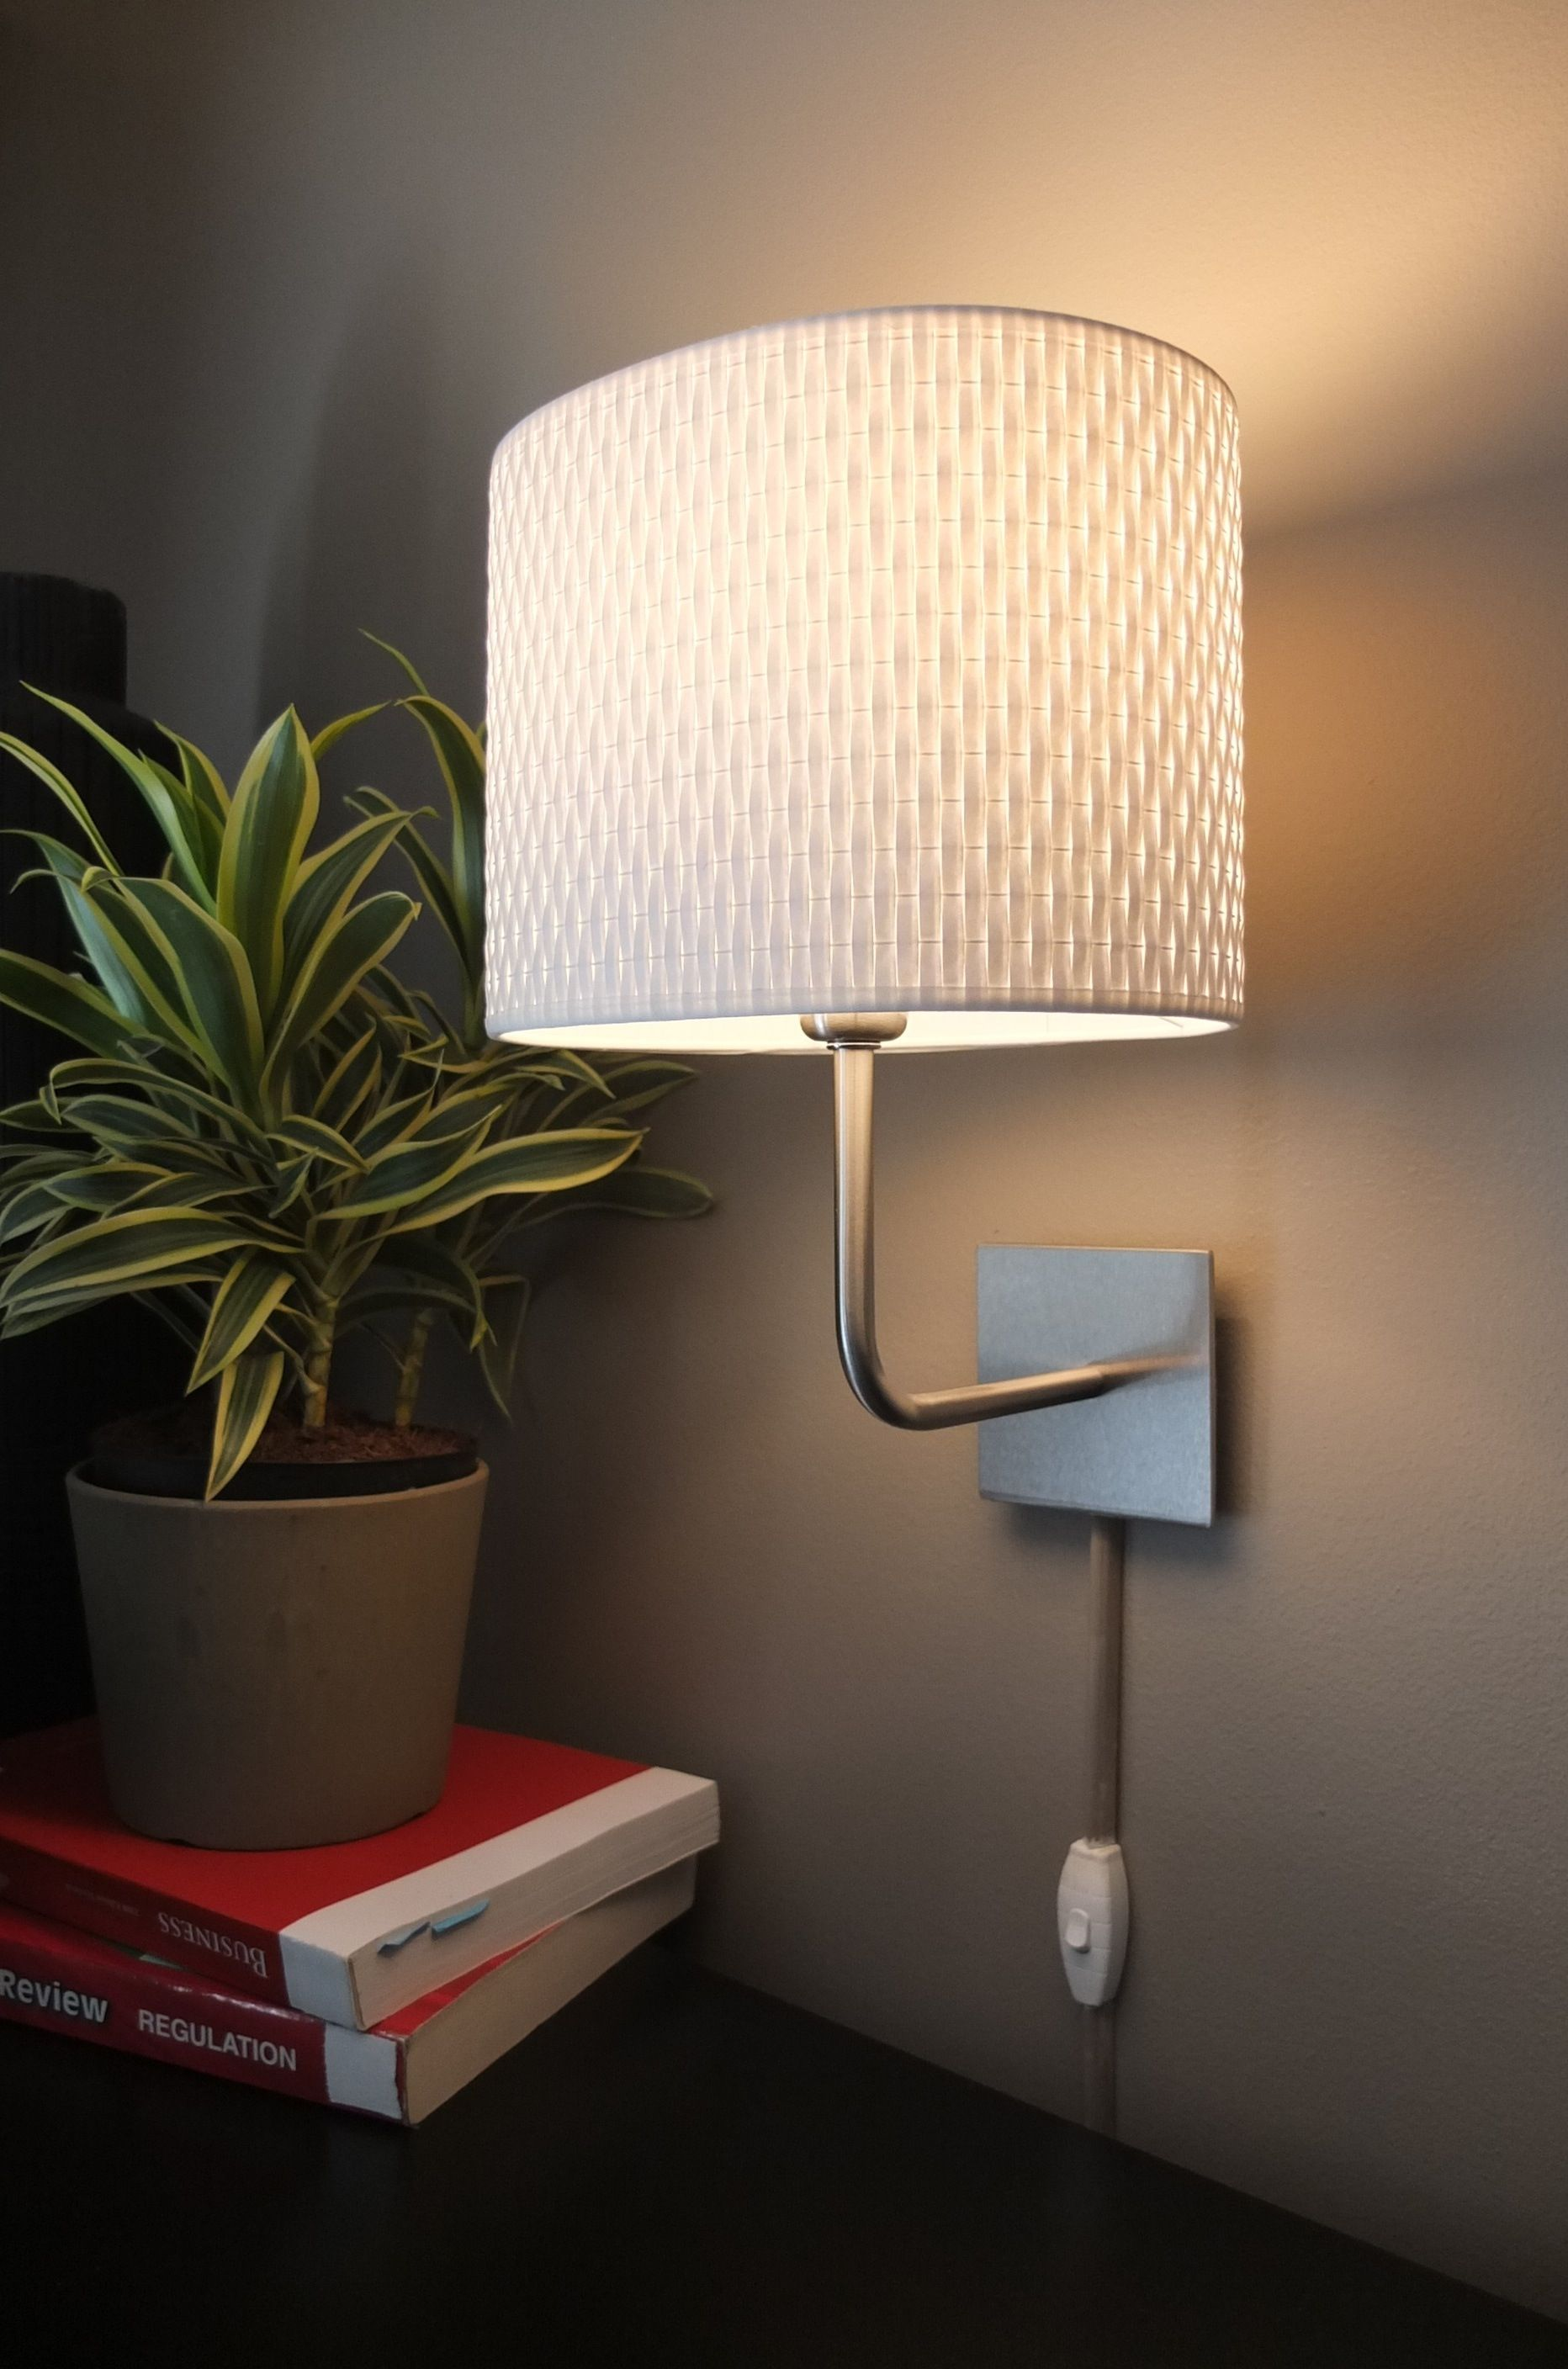 Wall Mounted IKEA Lamps Are An Easy Way To Add Light In A Room Without A  Ceiling Fixture. ALÄNG Has Two Color Choices, And A Coordinating Floor And  Table ...